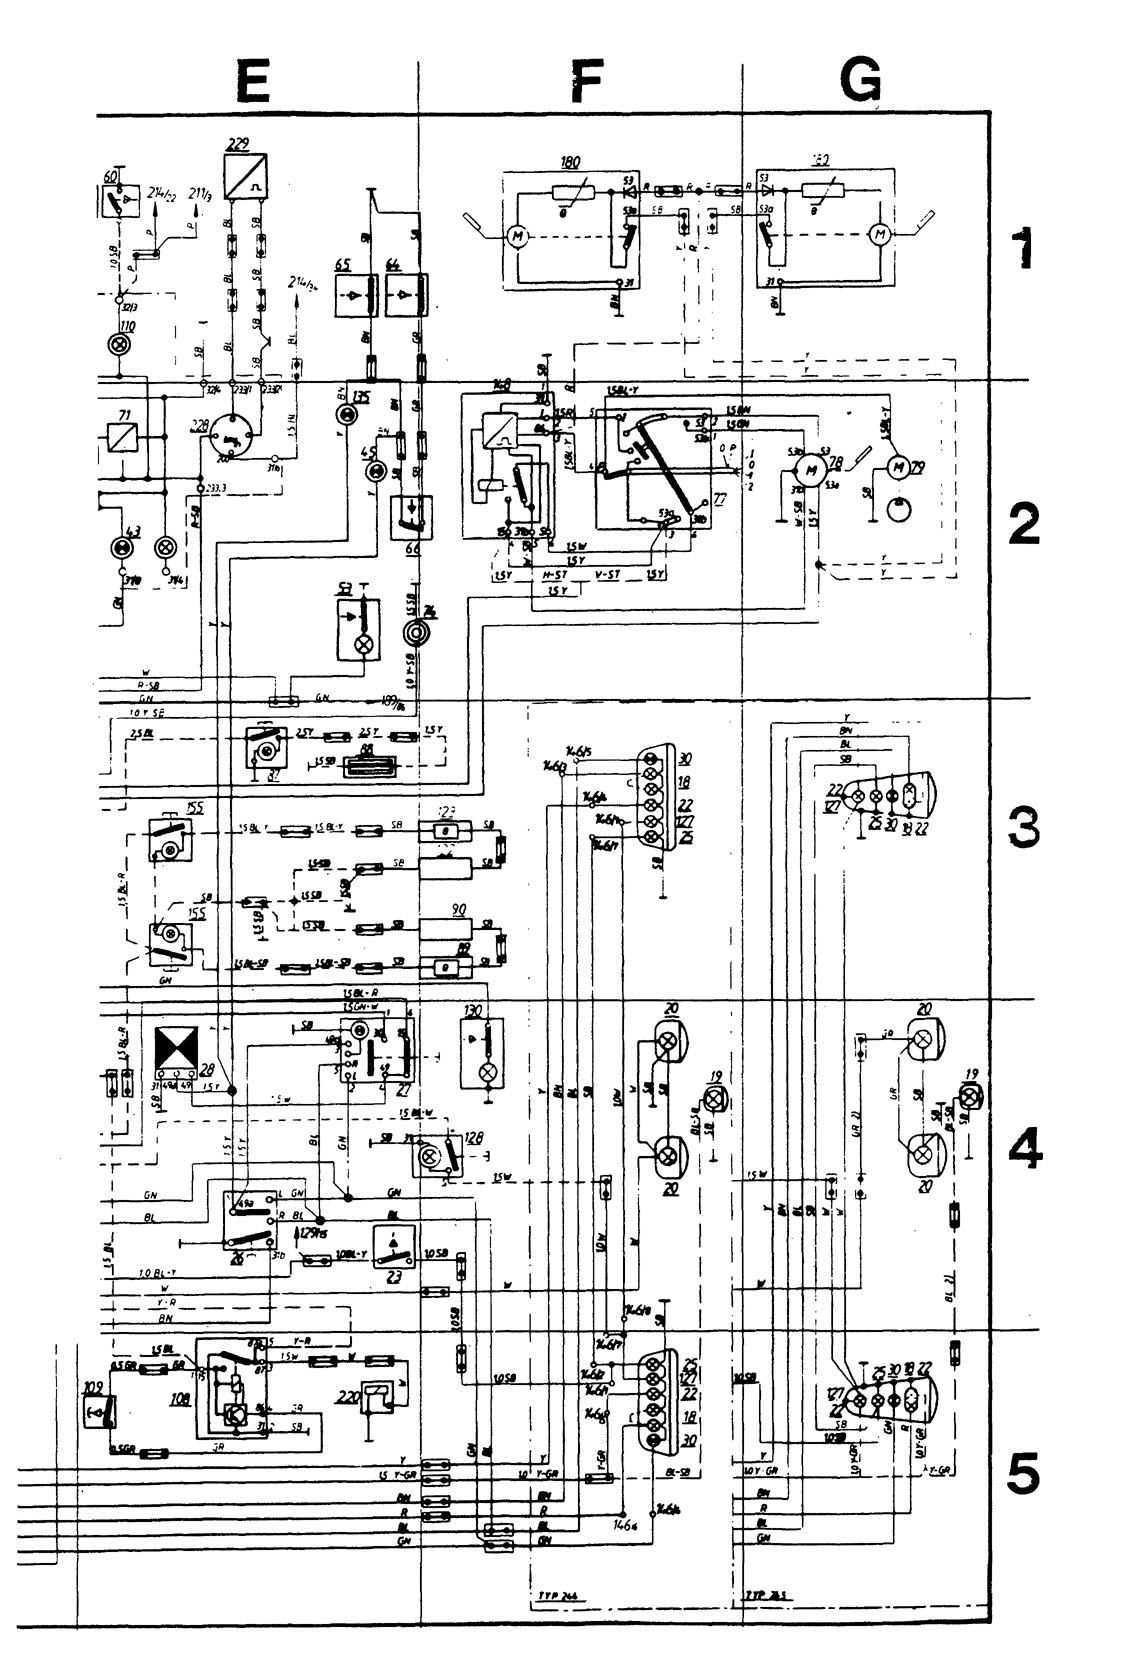 Volvo 242 Gt Wiring Diagram - Wiring Diagram Replace thick-classroom -  thick-classroom.miramontiseo.it | Volvo 242 Gt Wiring Diagram |  | thick-classroom.miramontiseo.it